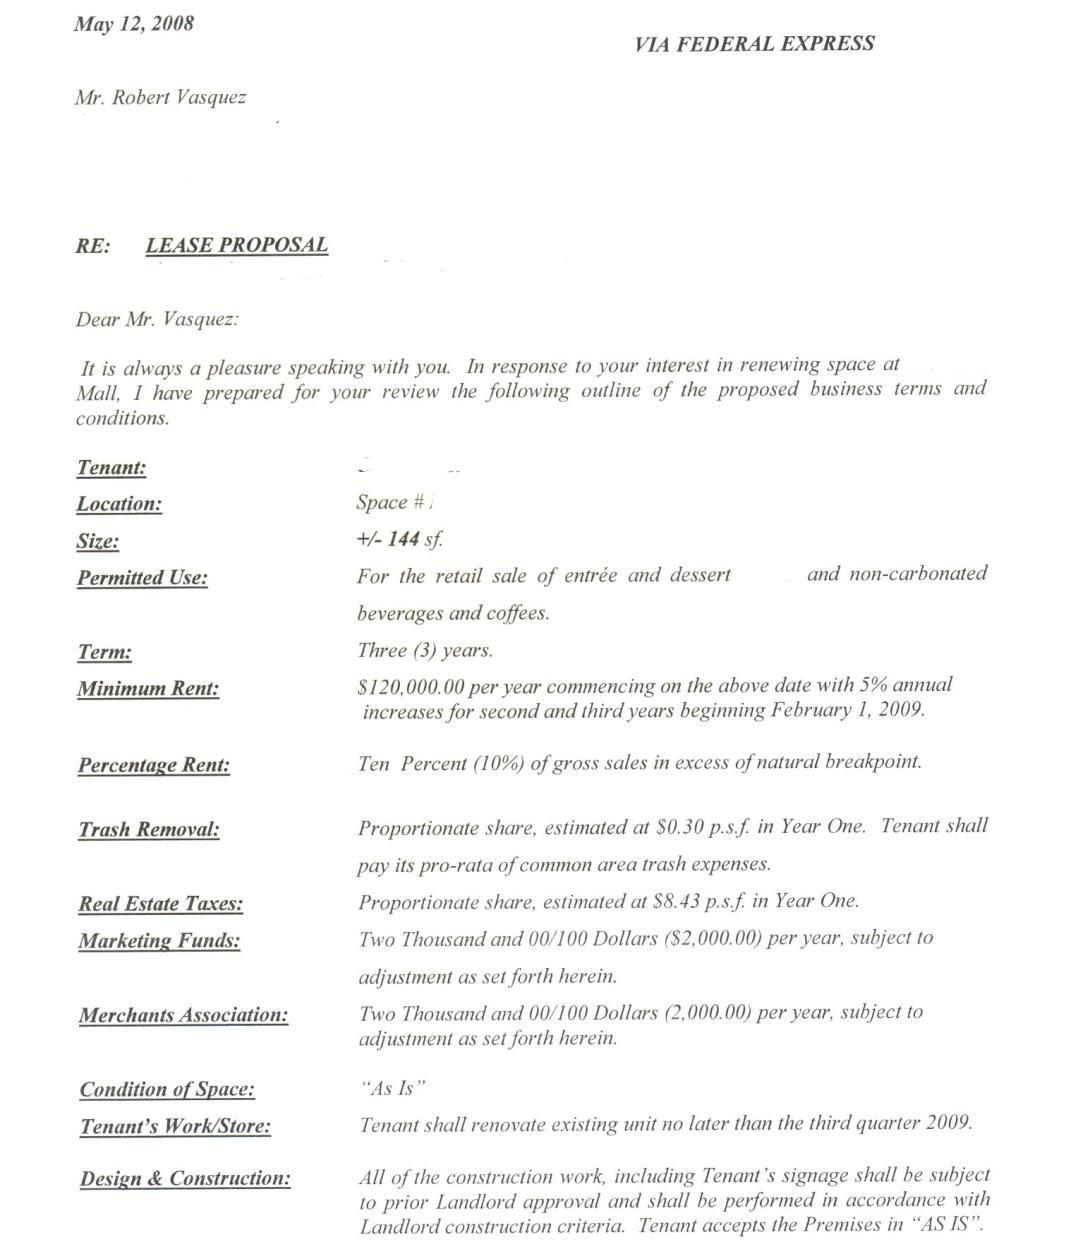 Letter Of Intent to Lease Template - Templatemercial Real Estate Letter Intent to Lease for Space